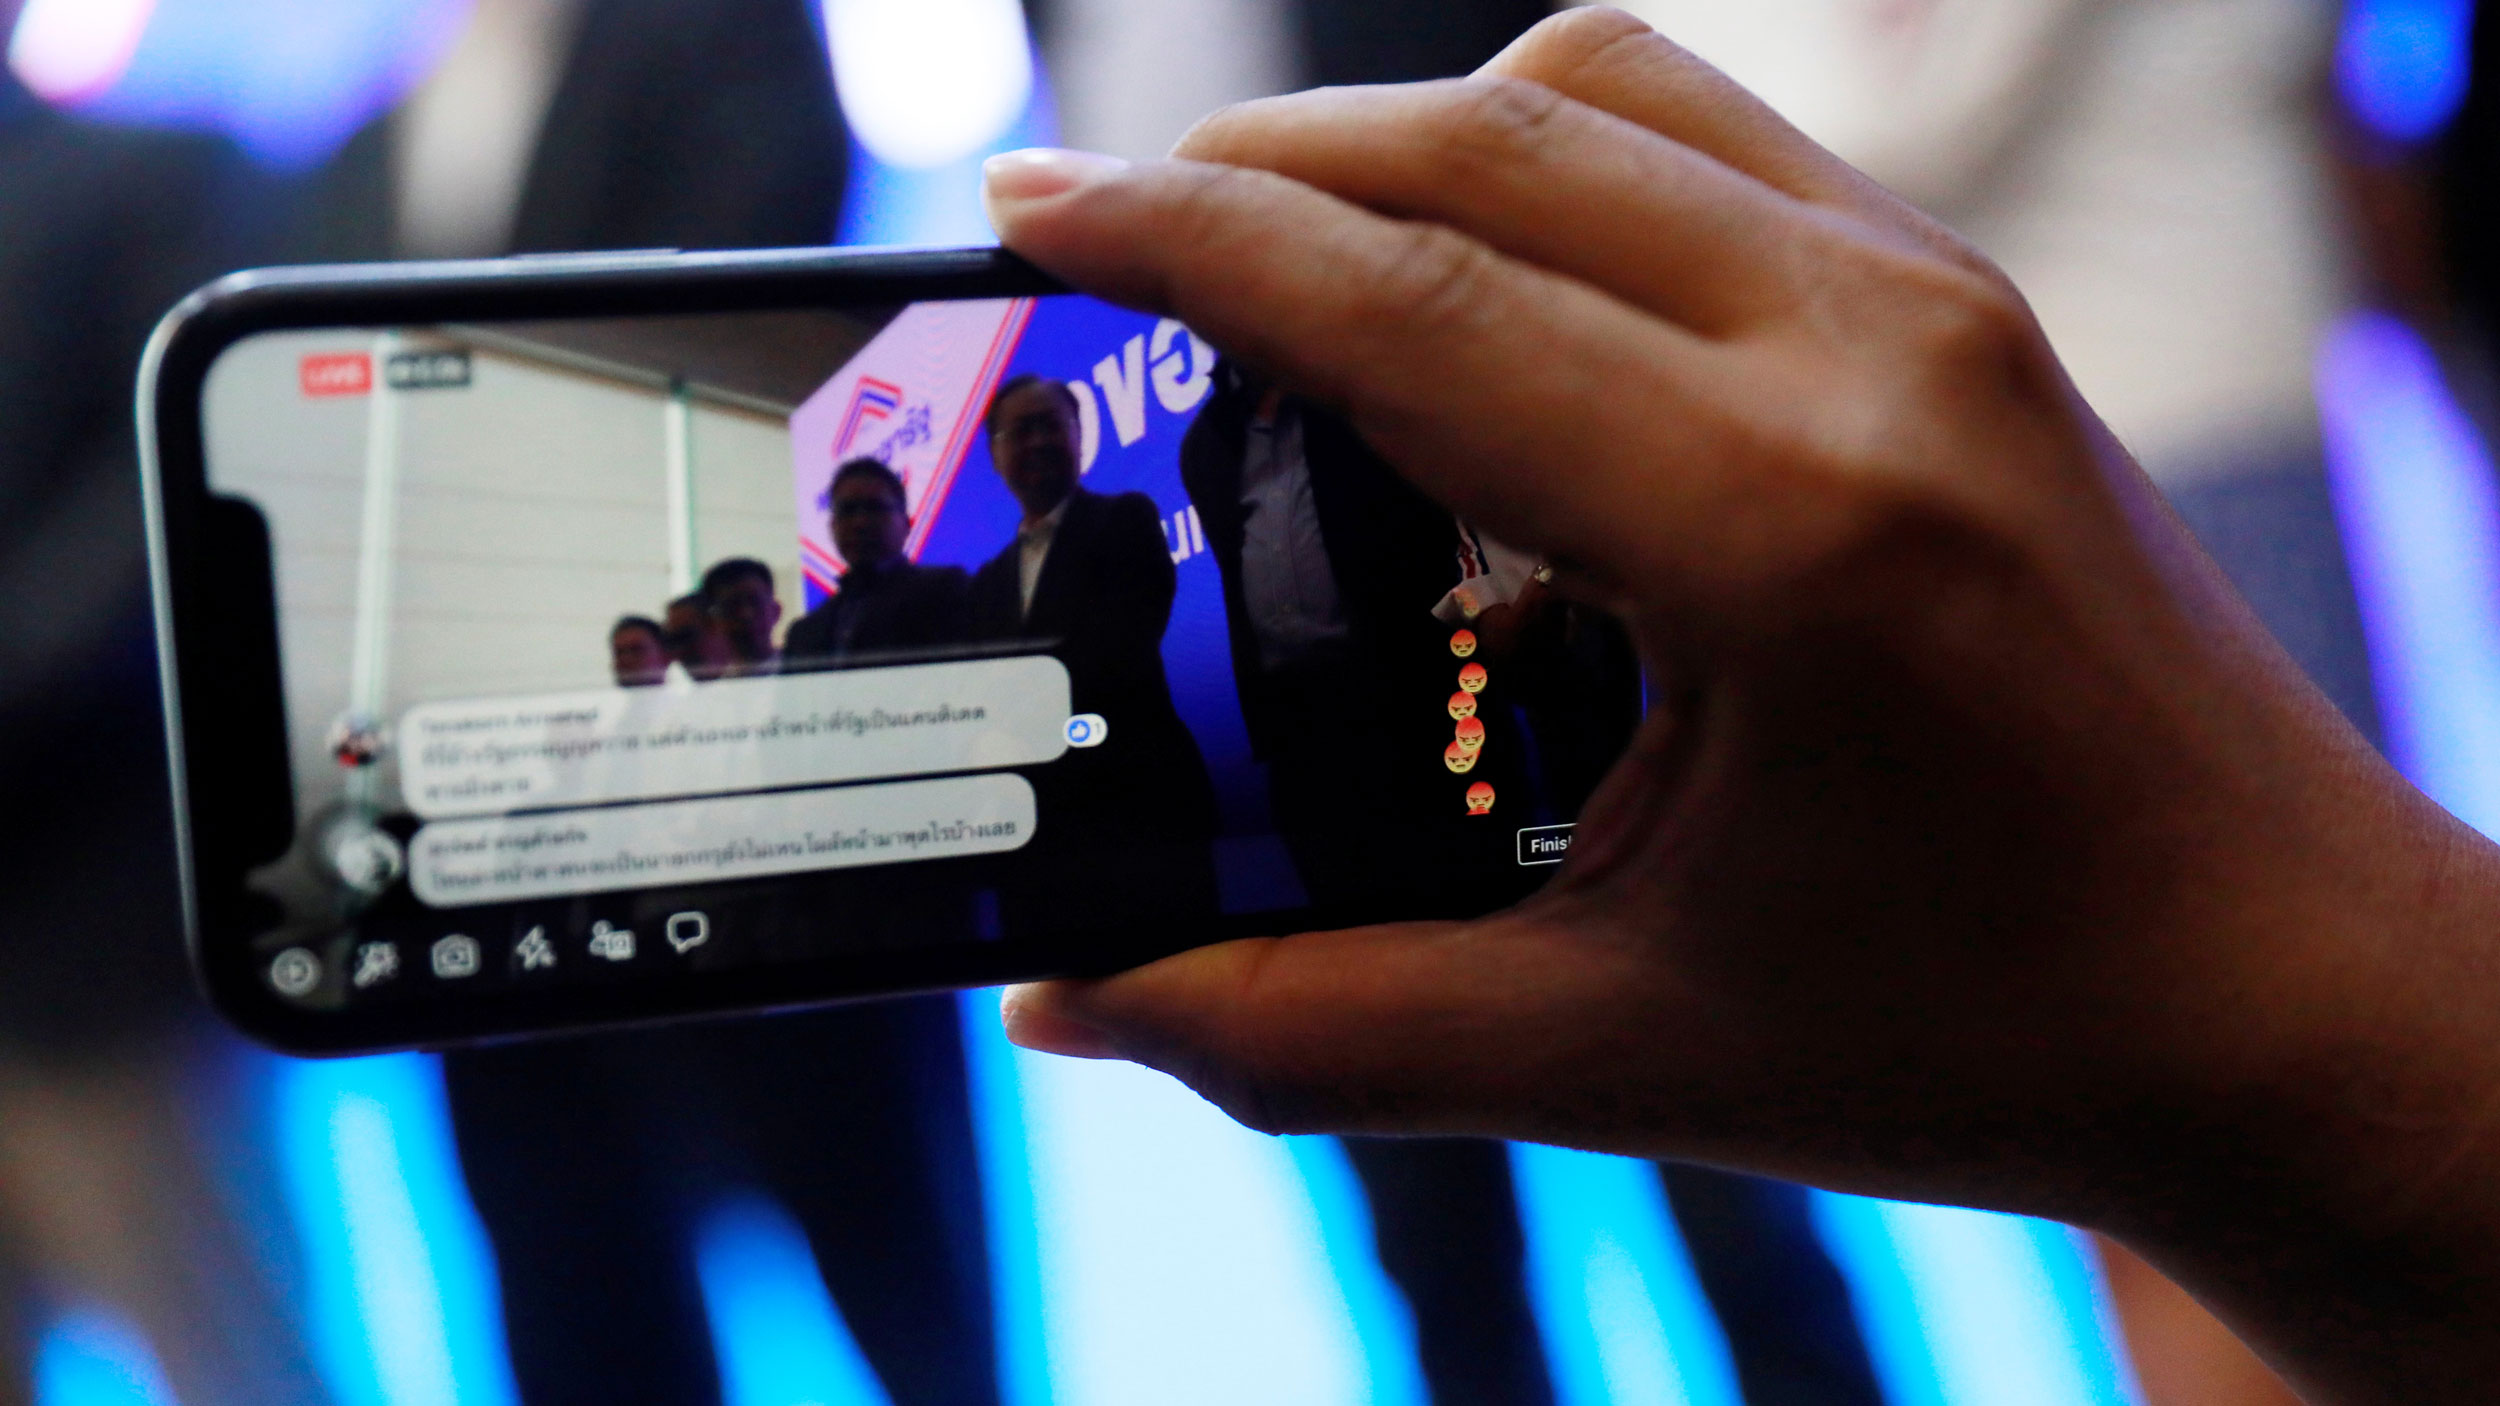 A hand holds a cell phone that is playing a facebook live video and angry faces are showing up in the bottom right corner